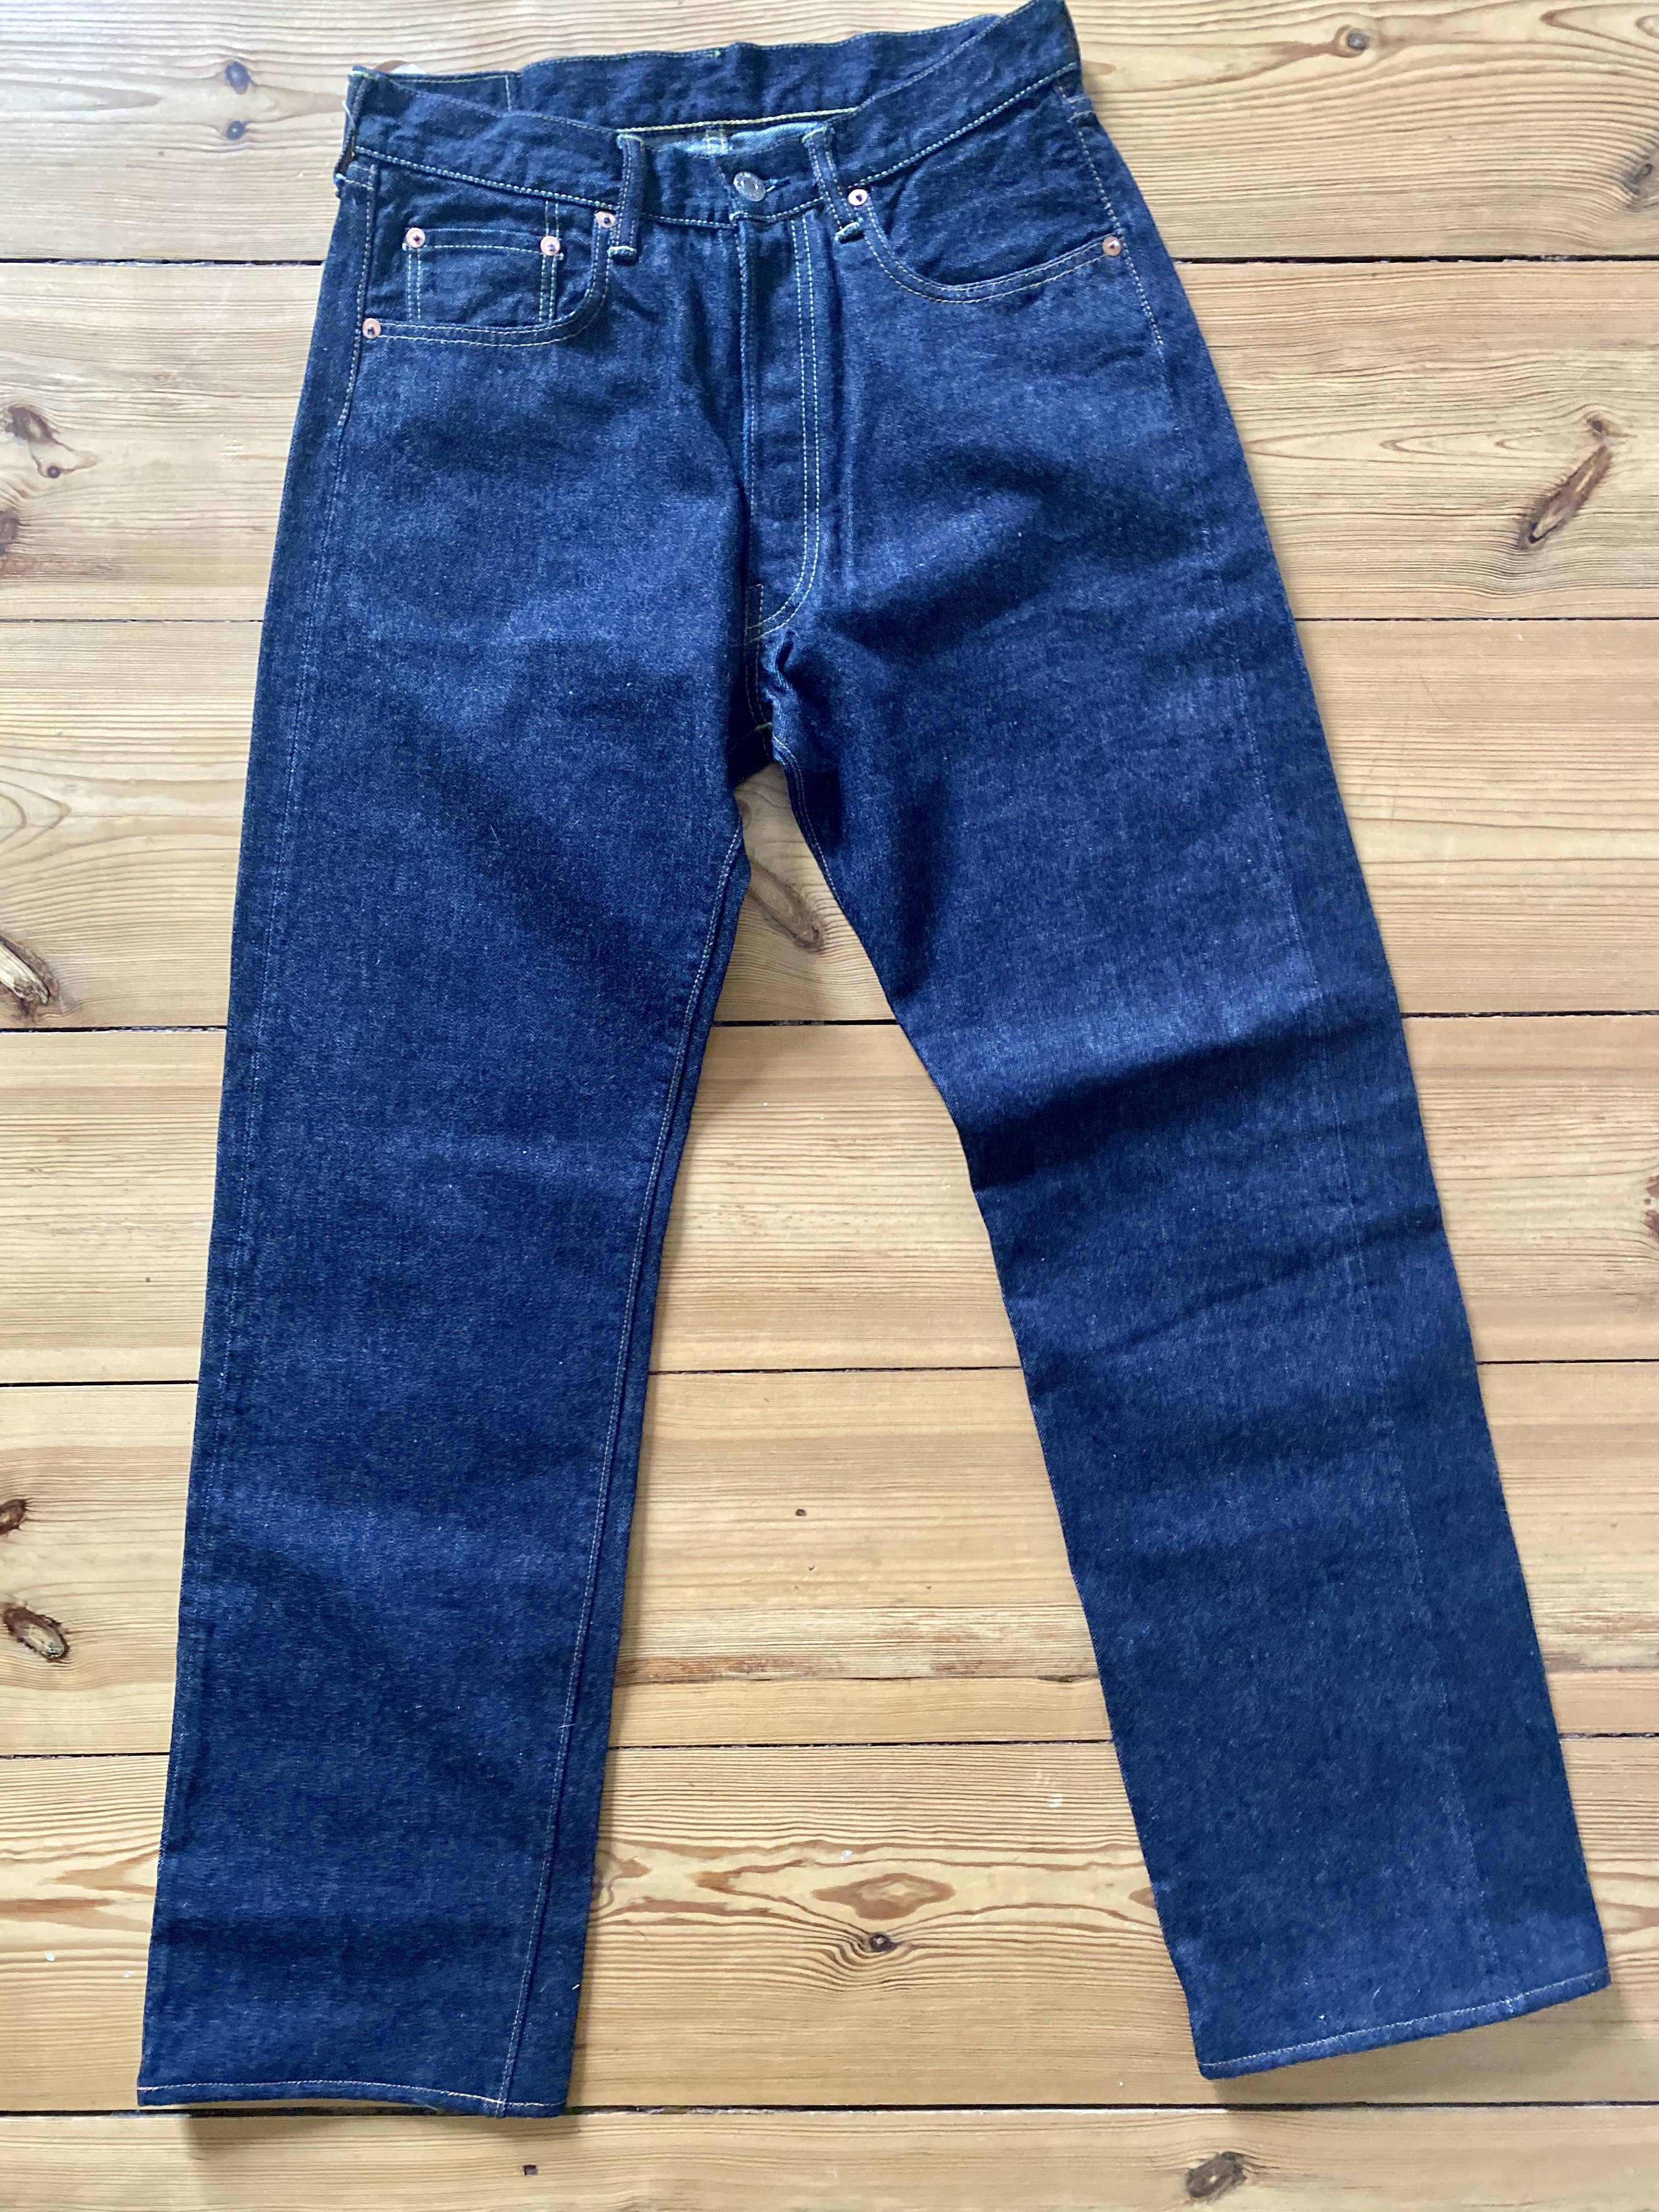 TCB 50s, one wash, size 31